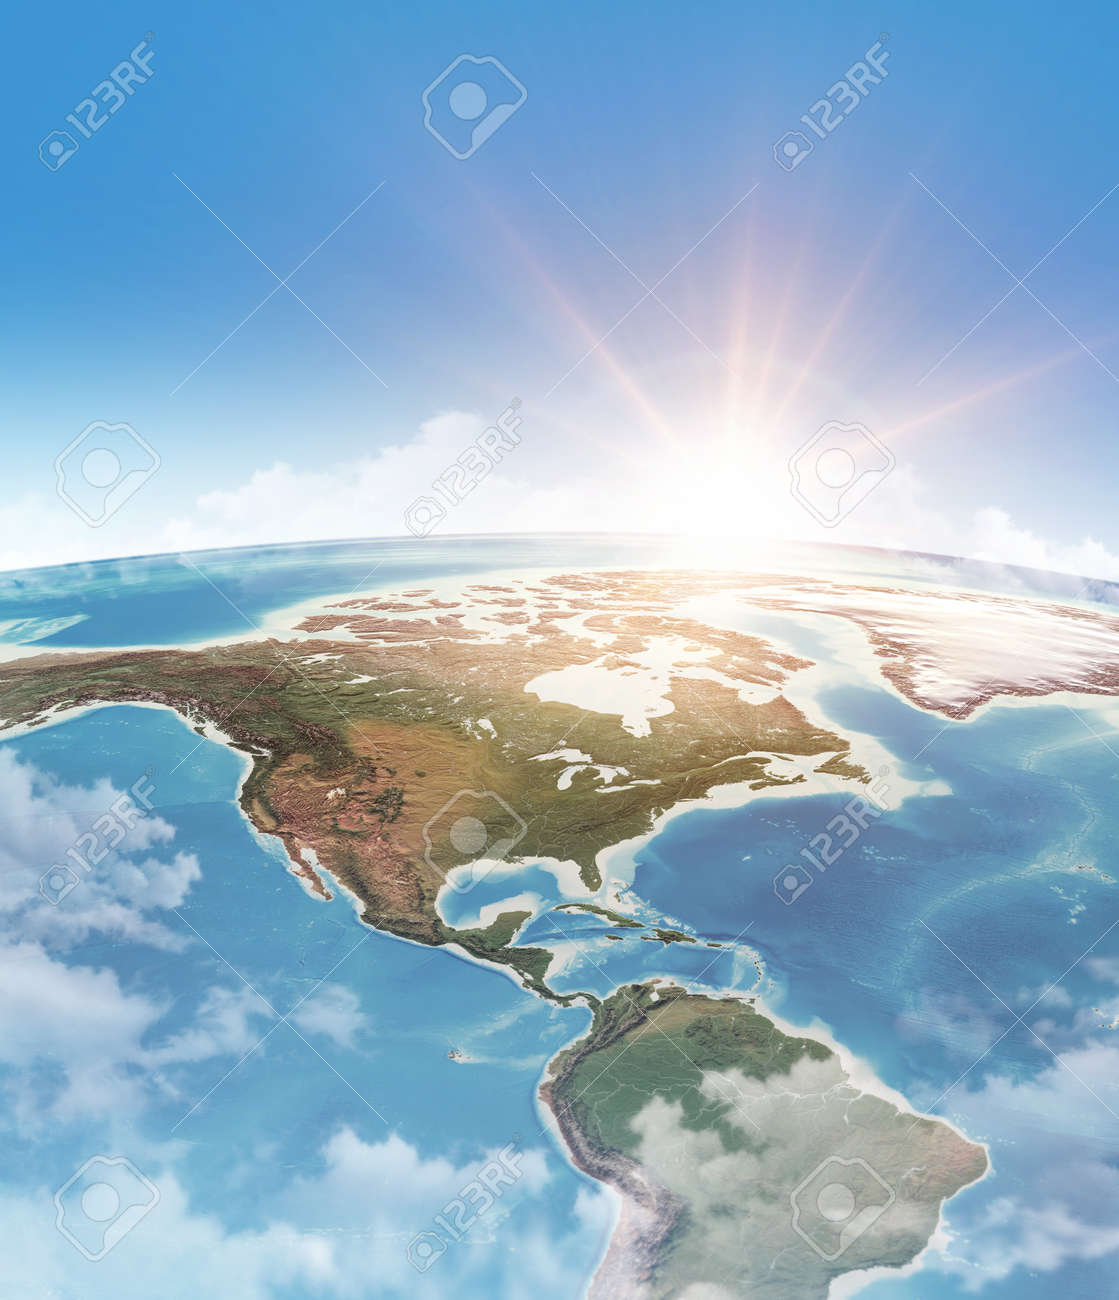 Sun shining through clouds, in blue sky, over a high detailed satellite view of Planet Earth, focused on America. 3D illustration - 167153511